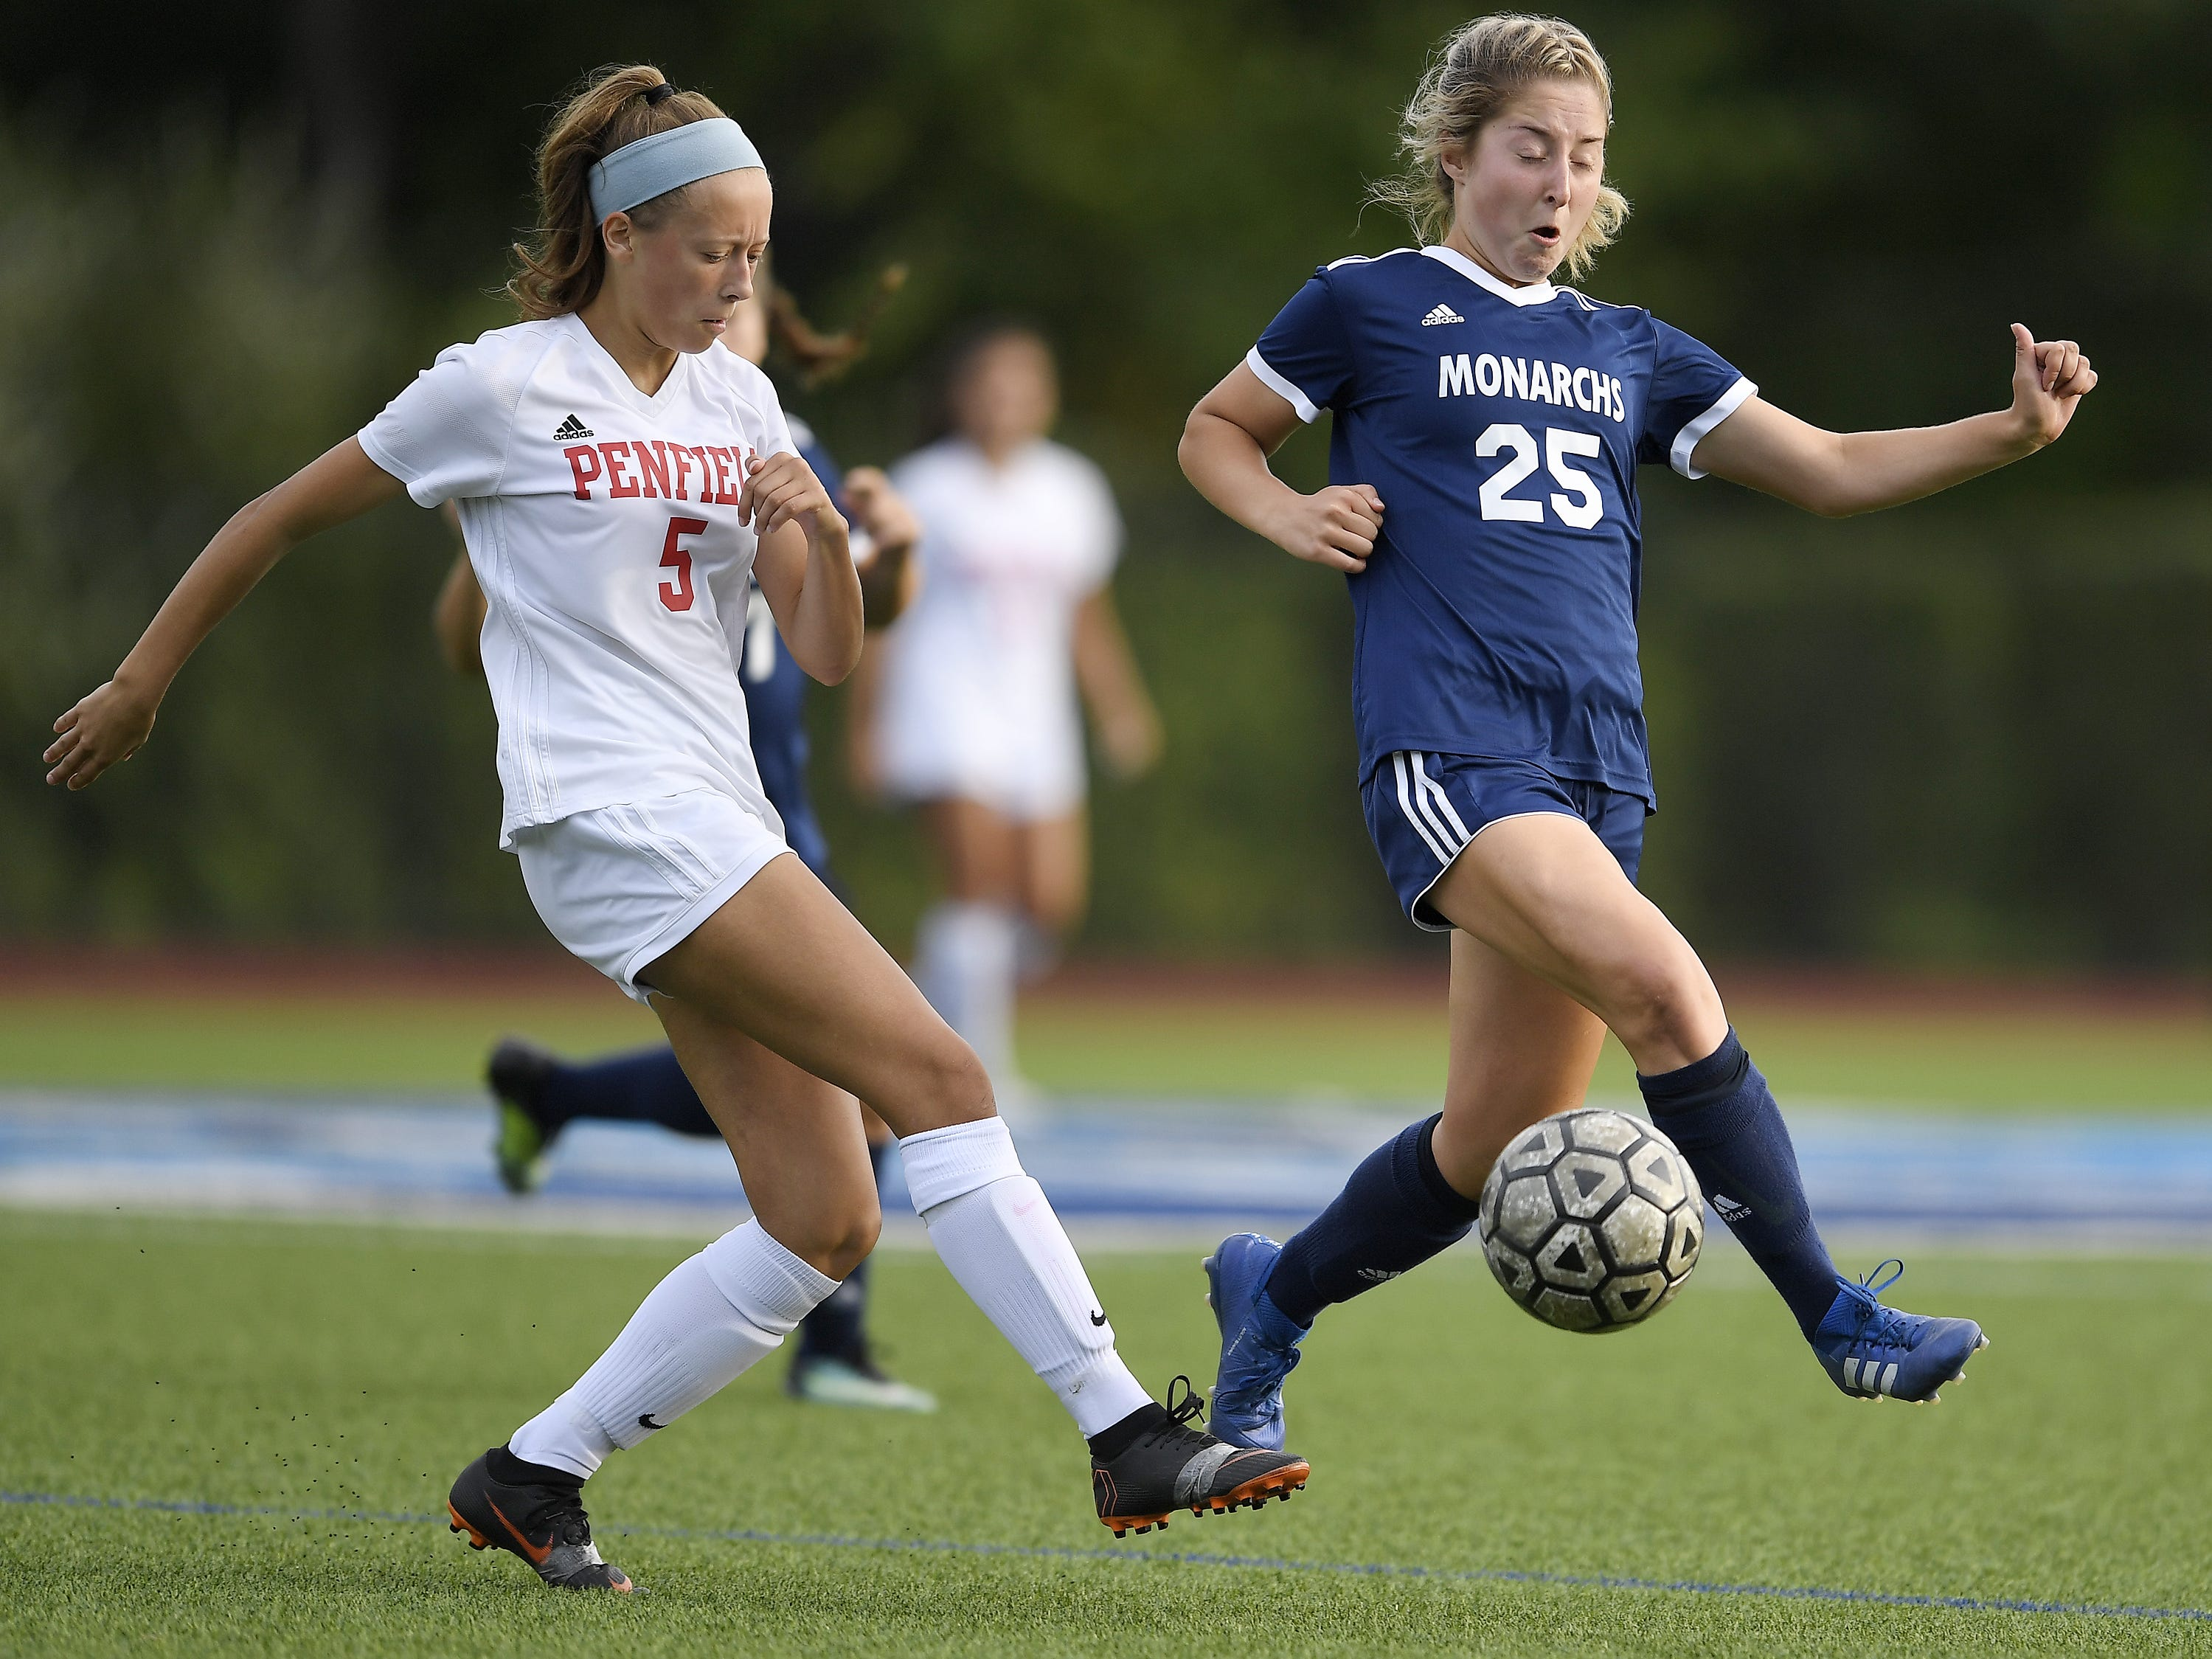 Penfield's Nicki Barlow, left, clears the ball past Mercy's Dori Rizzo during a regular season game played at Mercy on Wednesday.